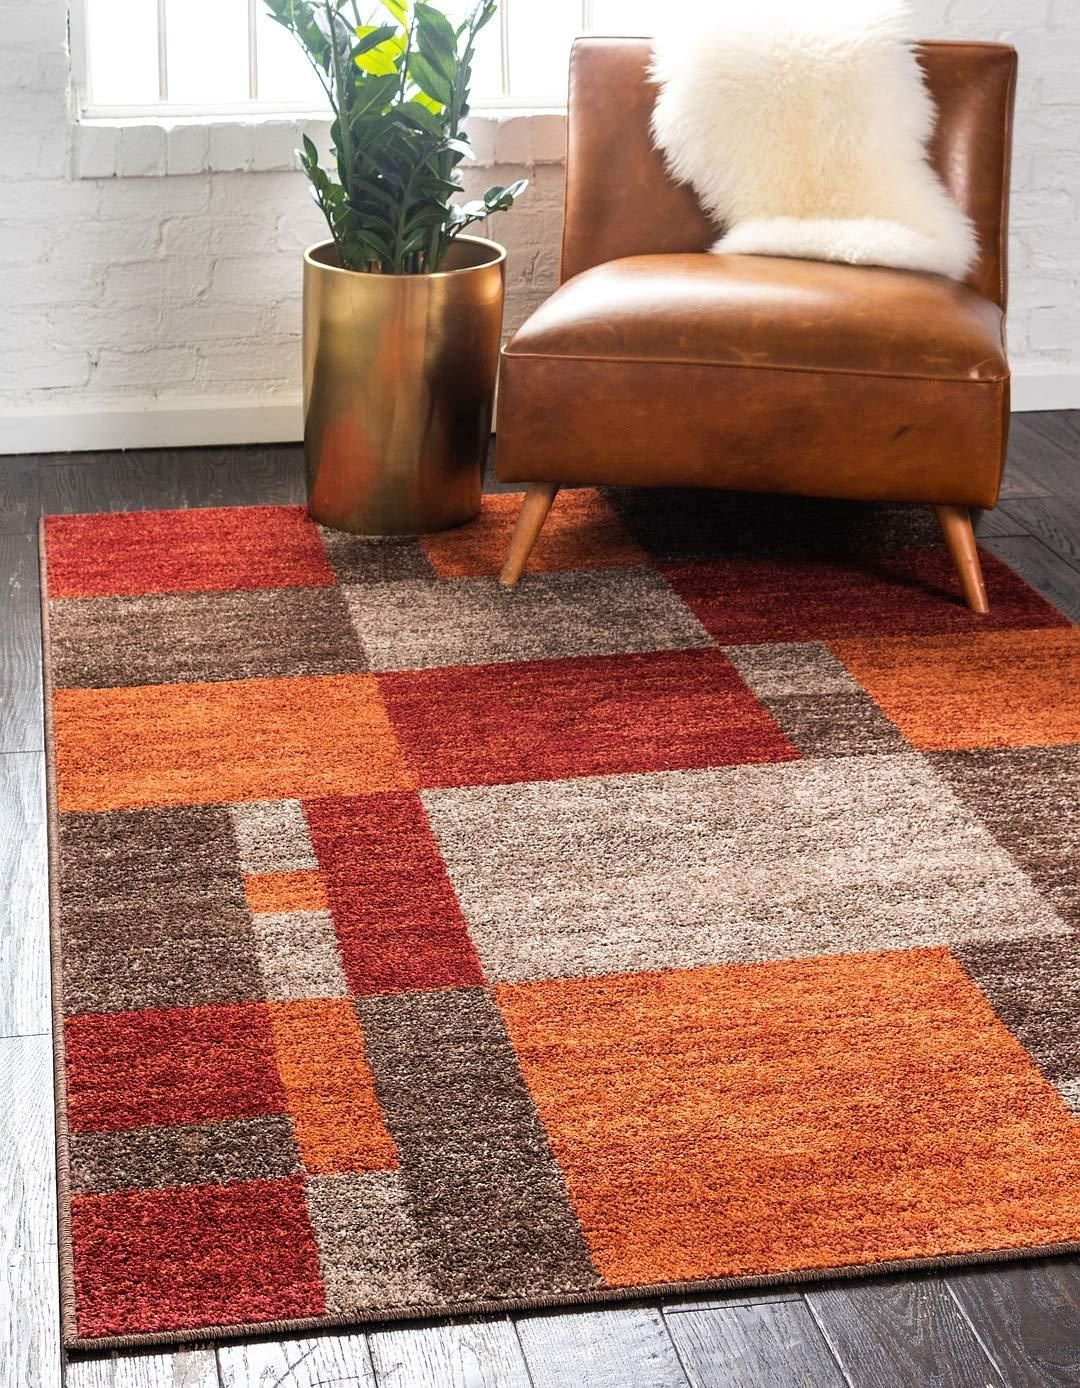 Warm Toned Checkered Multi Color Brown Orange Area Rugs Unique Loom Orange Area Rug Area Rugs